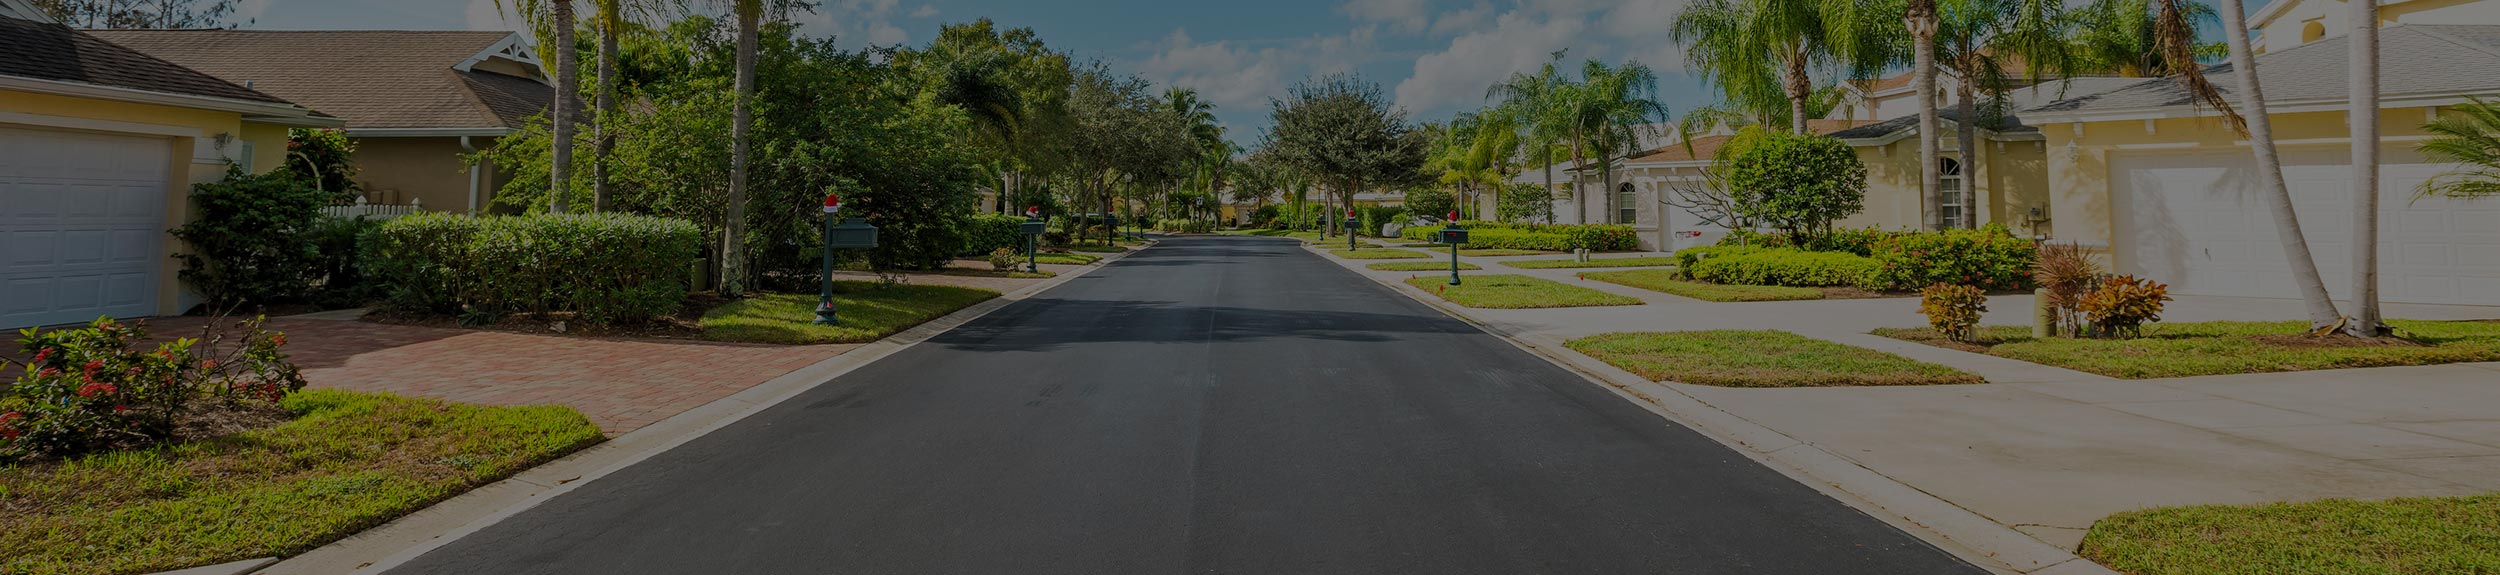 Naples Florida Community Paving - Collier Paving & Concrete